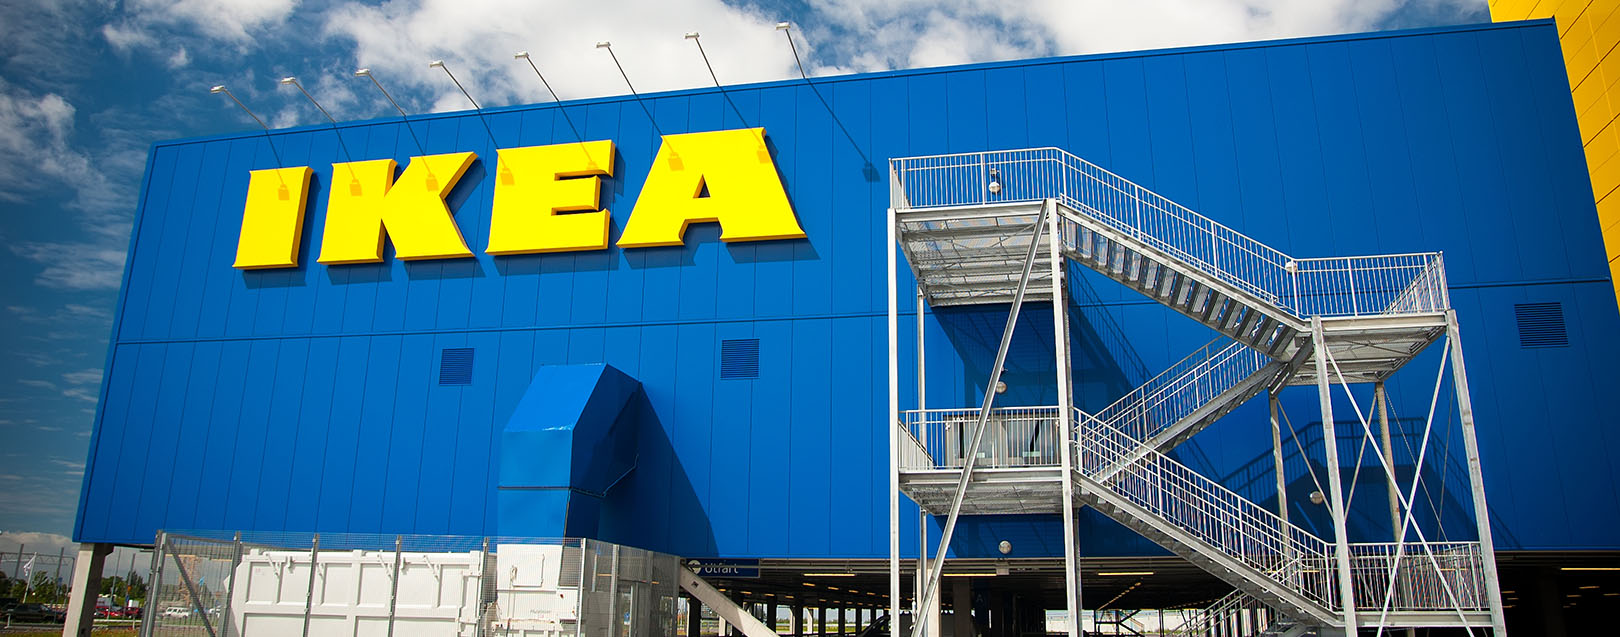 ikea coming to india Ikea expansion to brazil 143 32 0 the success in russia and china has brought ikea's eyes to india and brazil of the five largest ikea stores in the world.